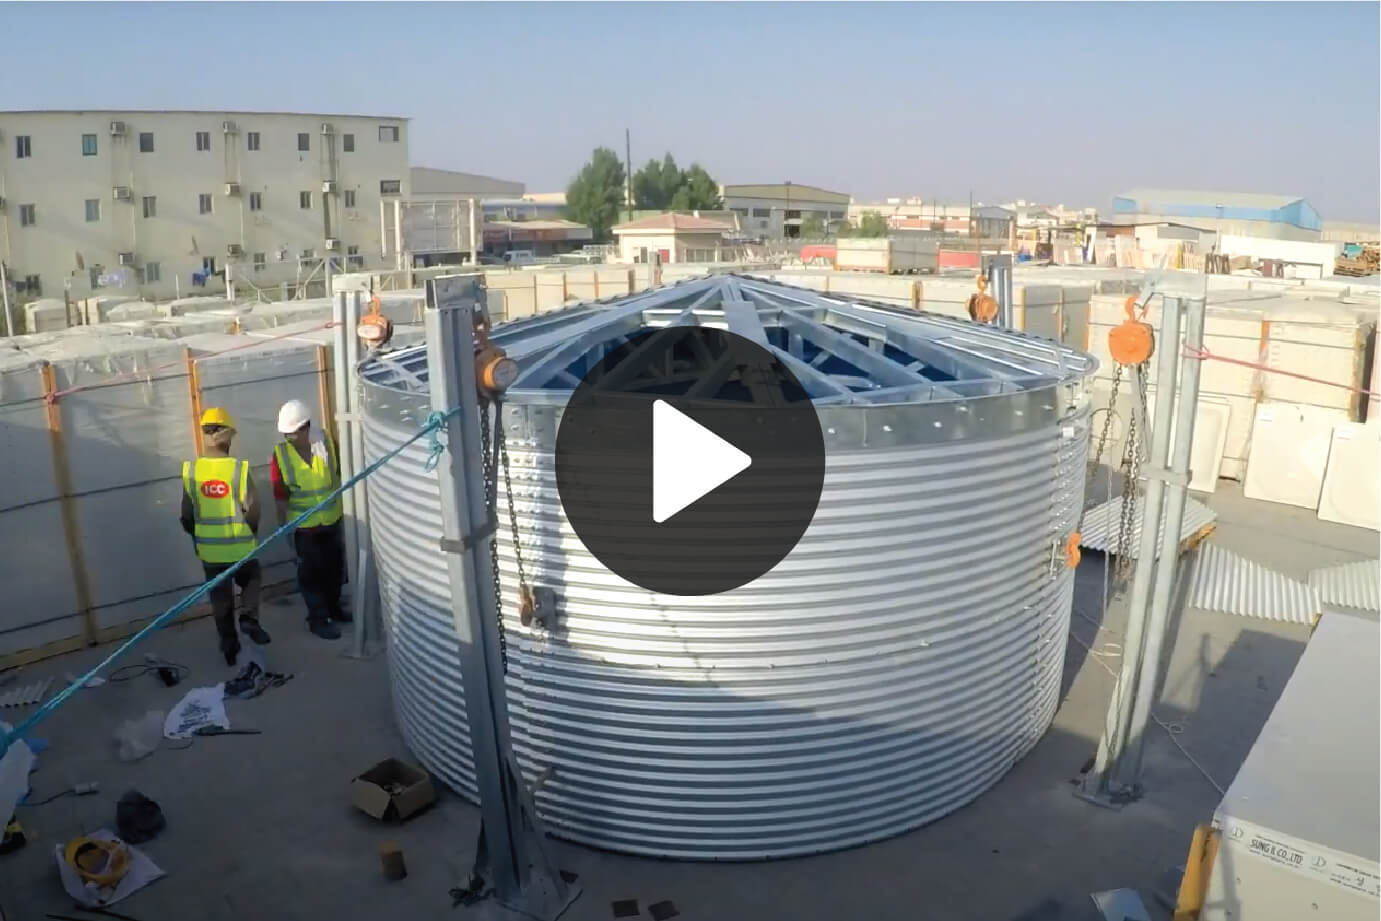 Steel Tank Video by SAJID SULAIMAN